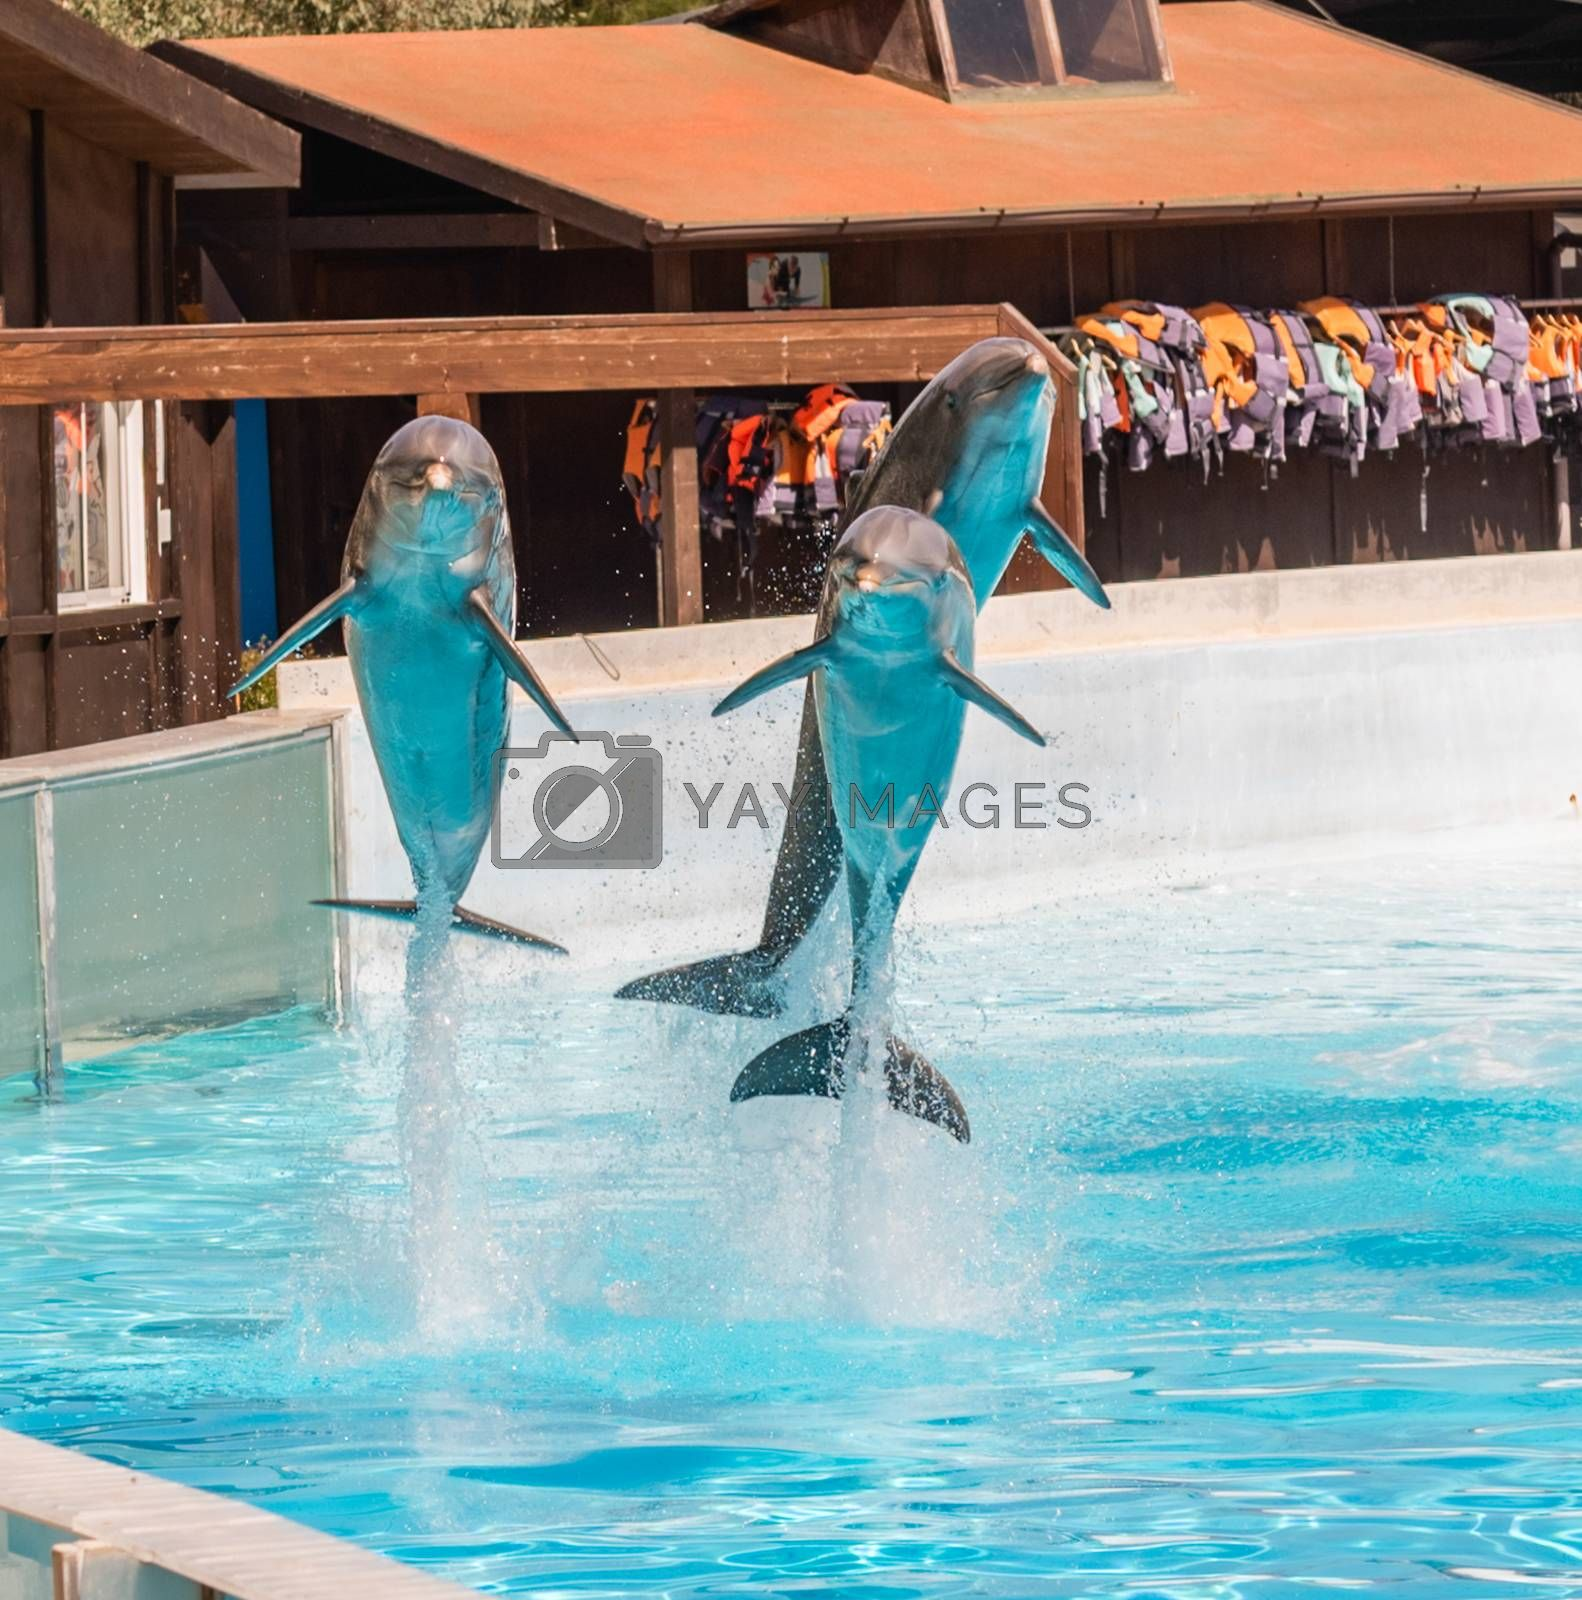 Three beautiful dolphins jumping in a swimming pool showing their acrobatic abilities